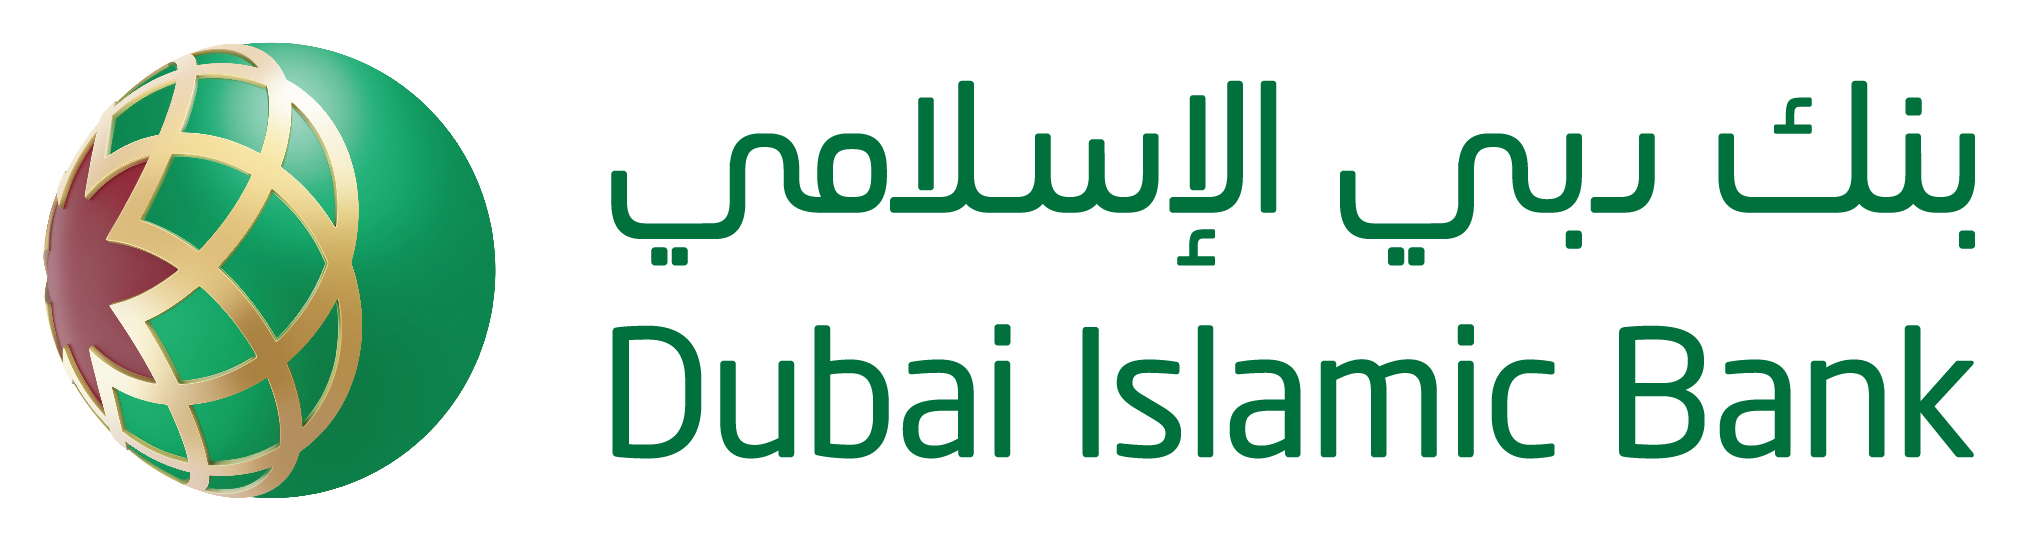 Dubai Islamic Bank - Al Islami Used Car Finance